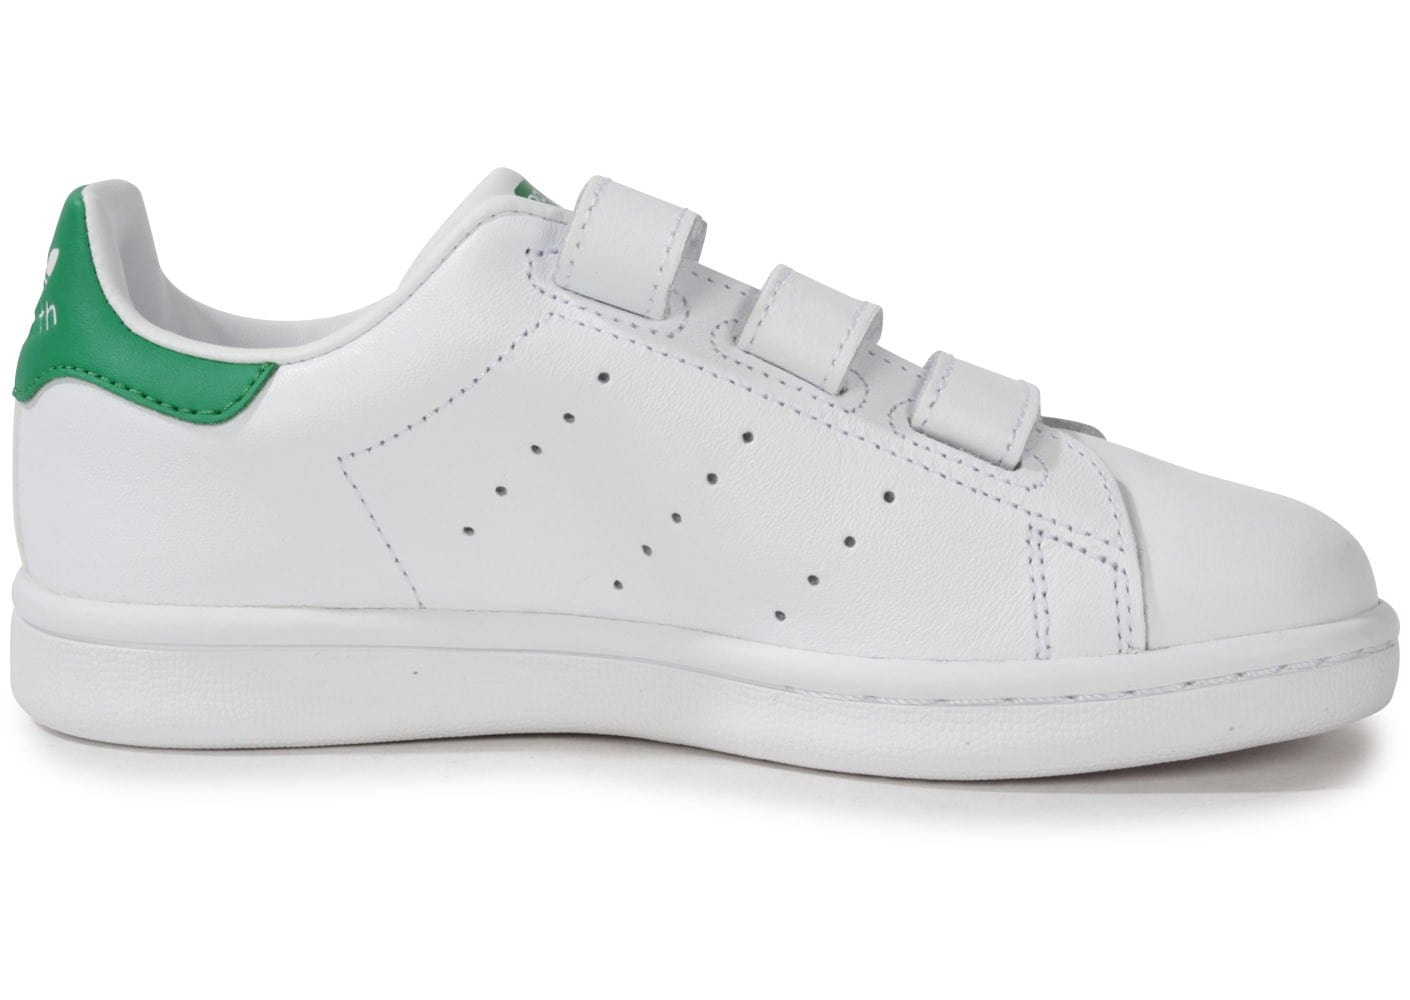 Scratch Smith Blanche Enfant Stan Verteamp; Chaussures Adidas thQCxdsr